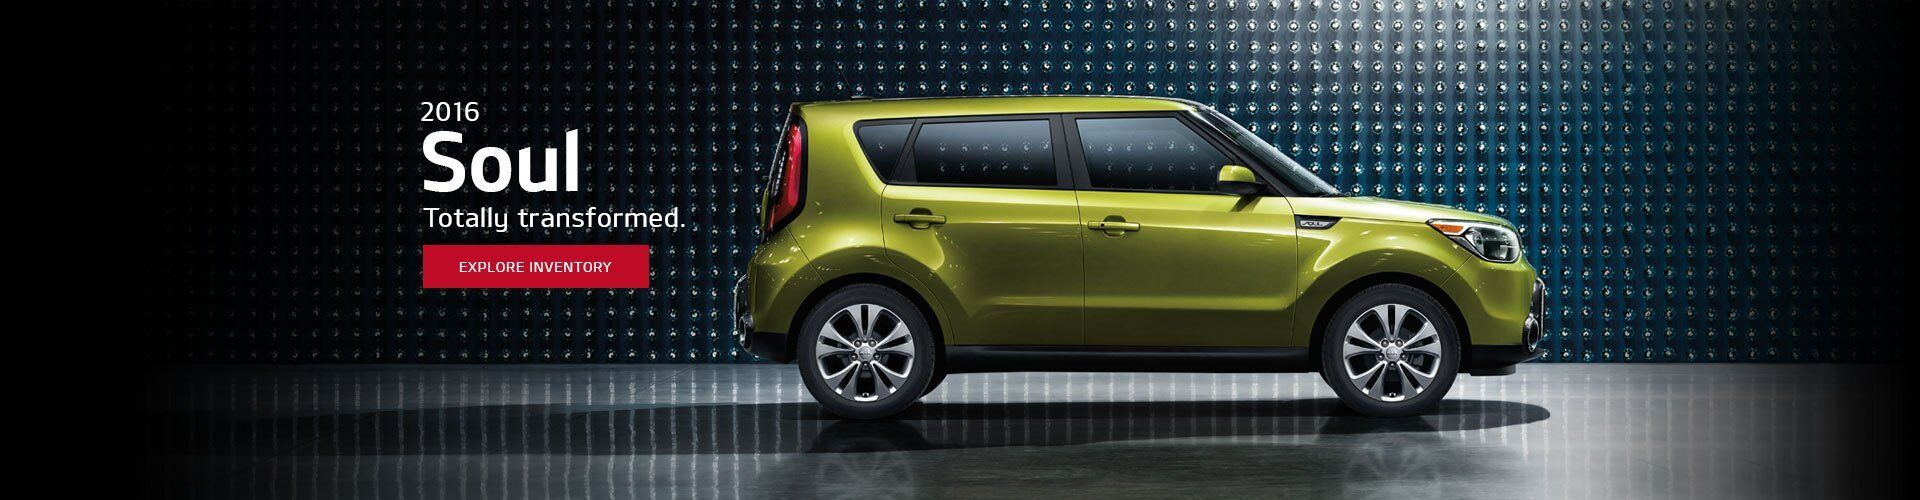 New Kia Soul at Garden Grove Kia